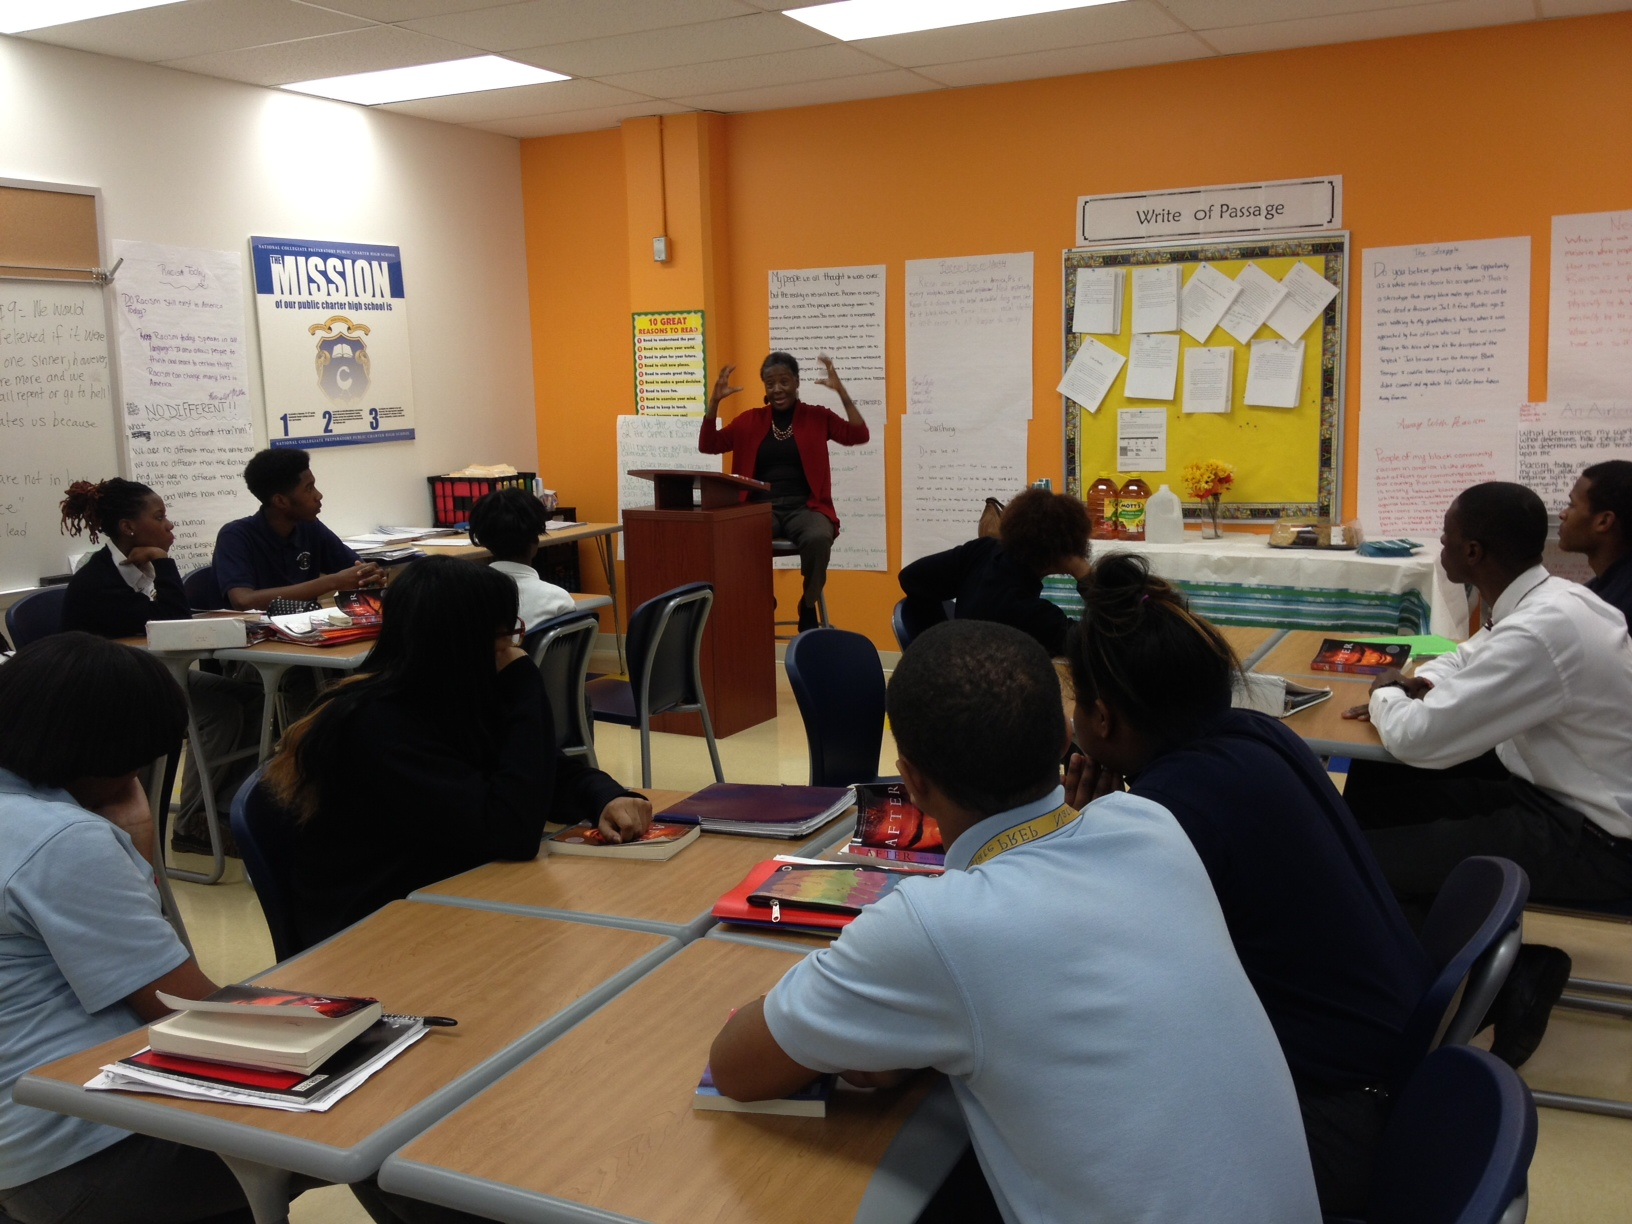 Marita Golden at National Collegiate Preparatory Public Charter School